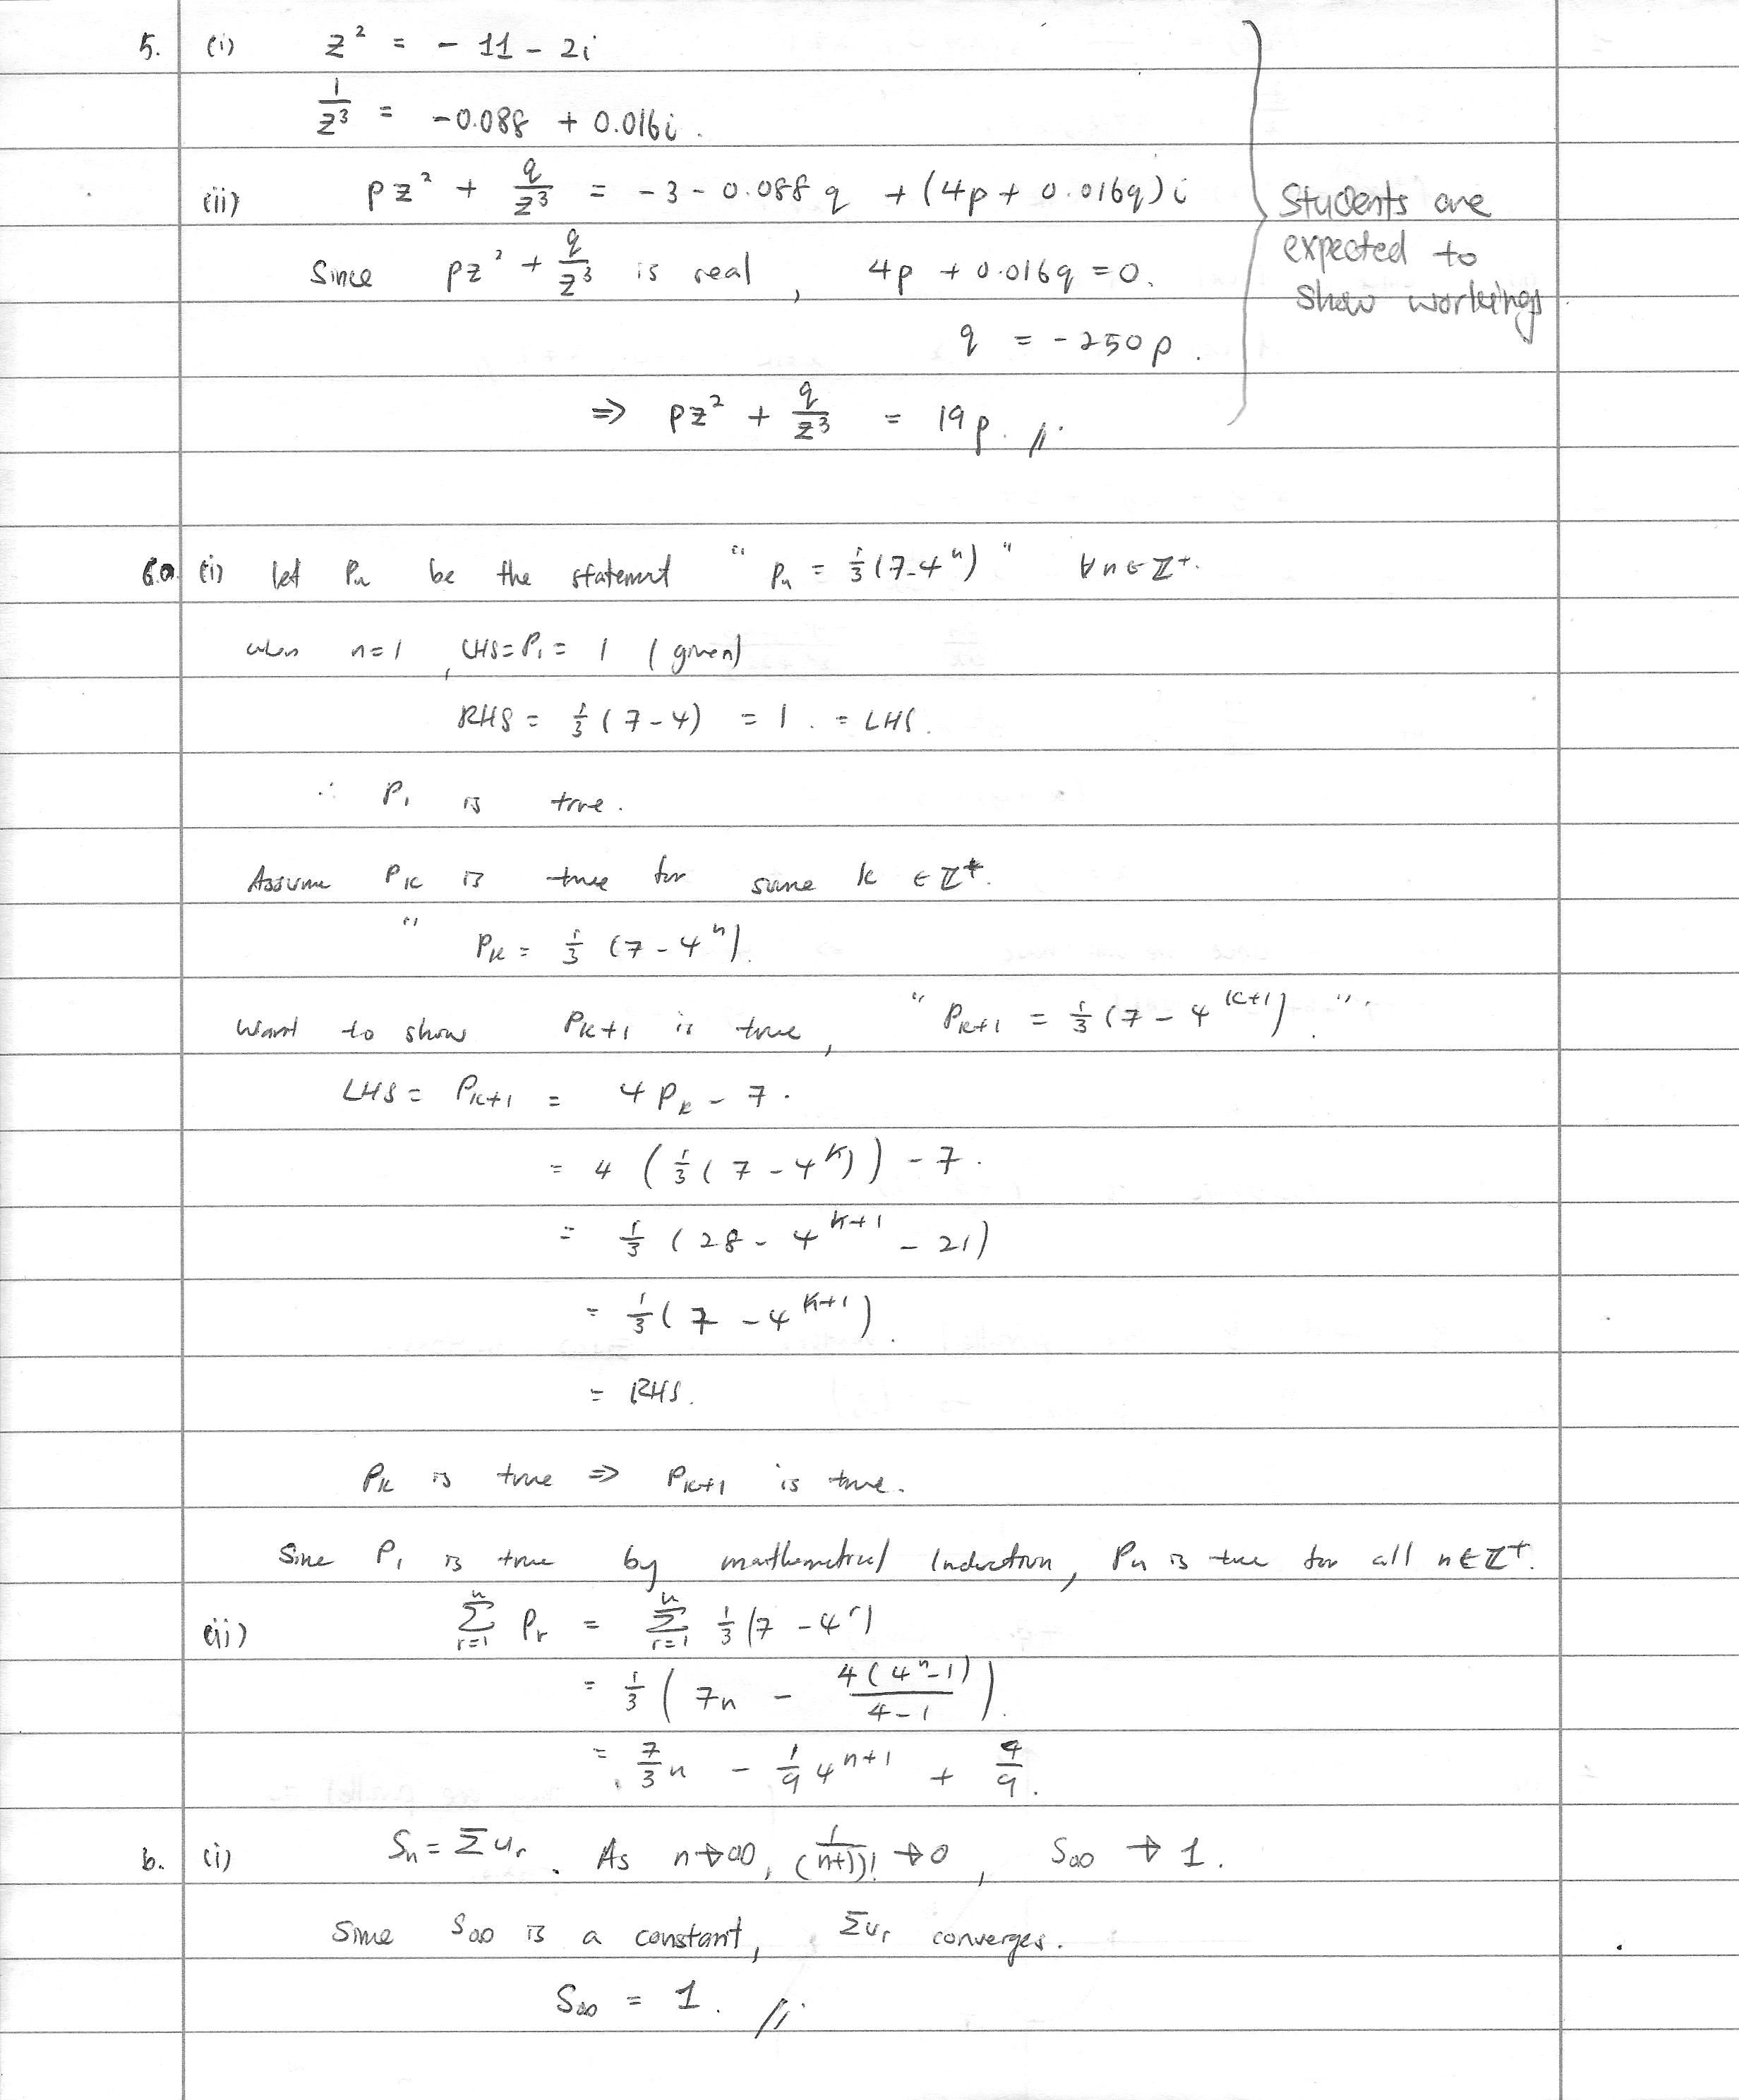 math essay 2 View essay - math essay 2 from math 1351 at laredo community college.